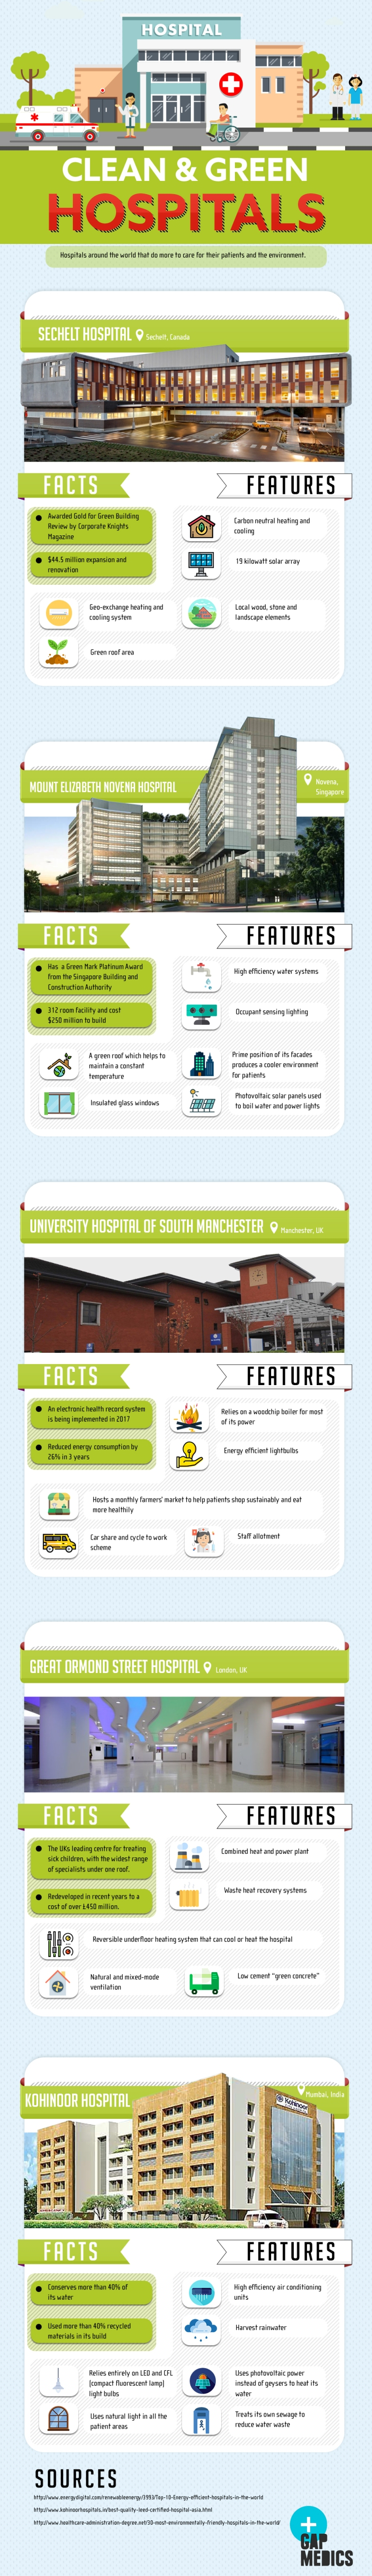 Clean and Green Hospitals [Infographic] | ecogreenlove